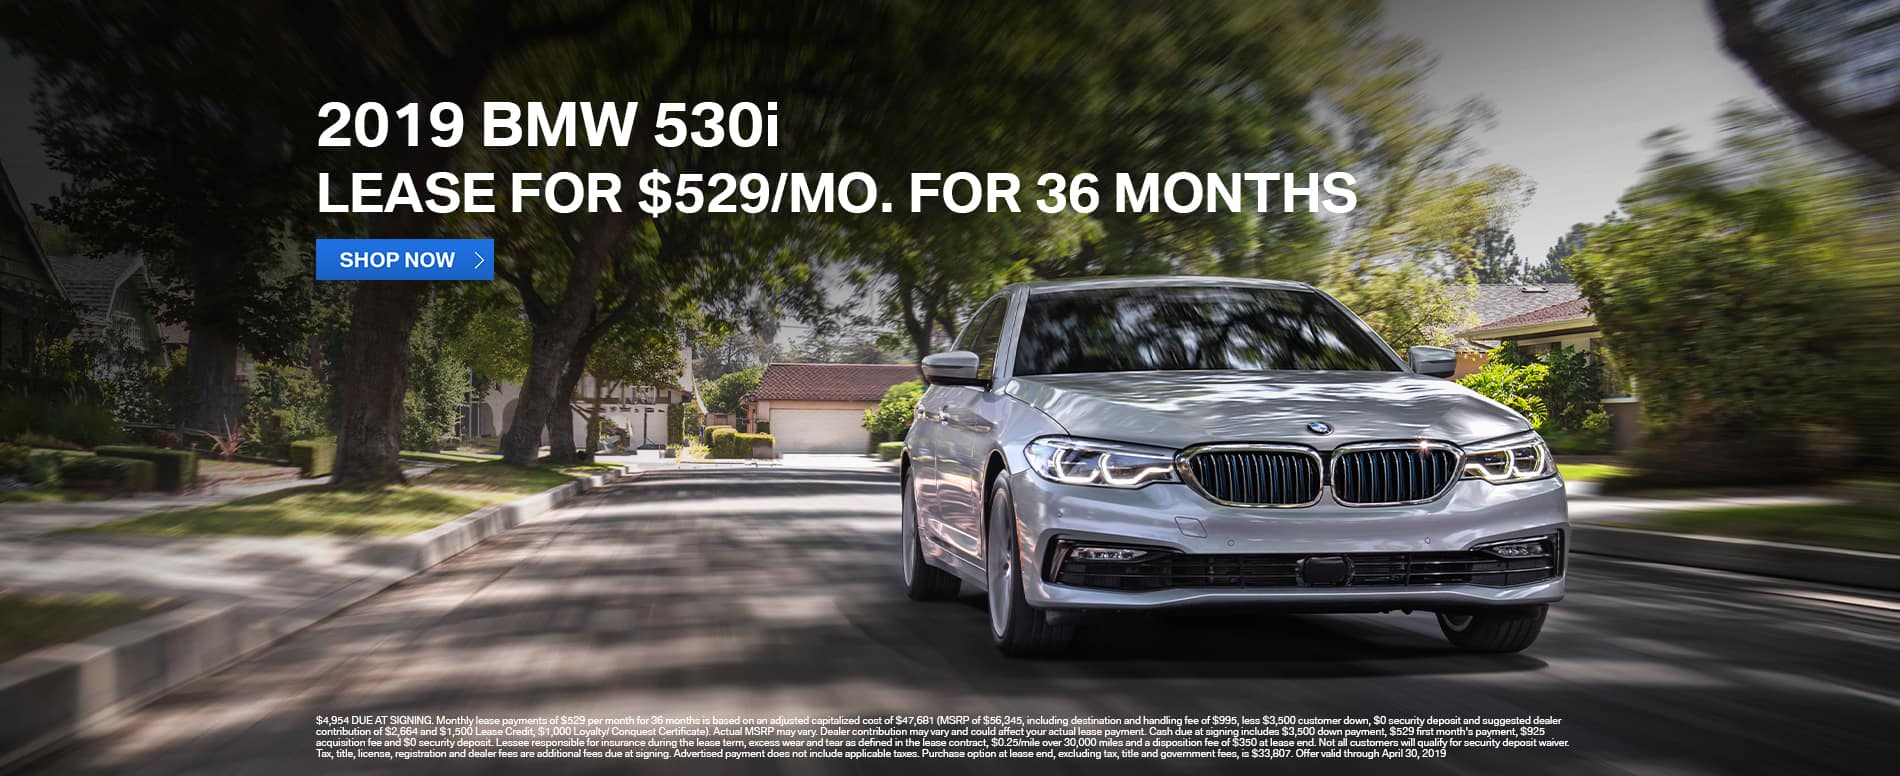 lease-2019-bmw-530i-sedan-for-529-mo-beaumont